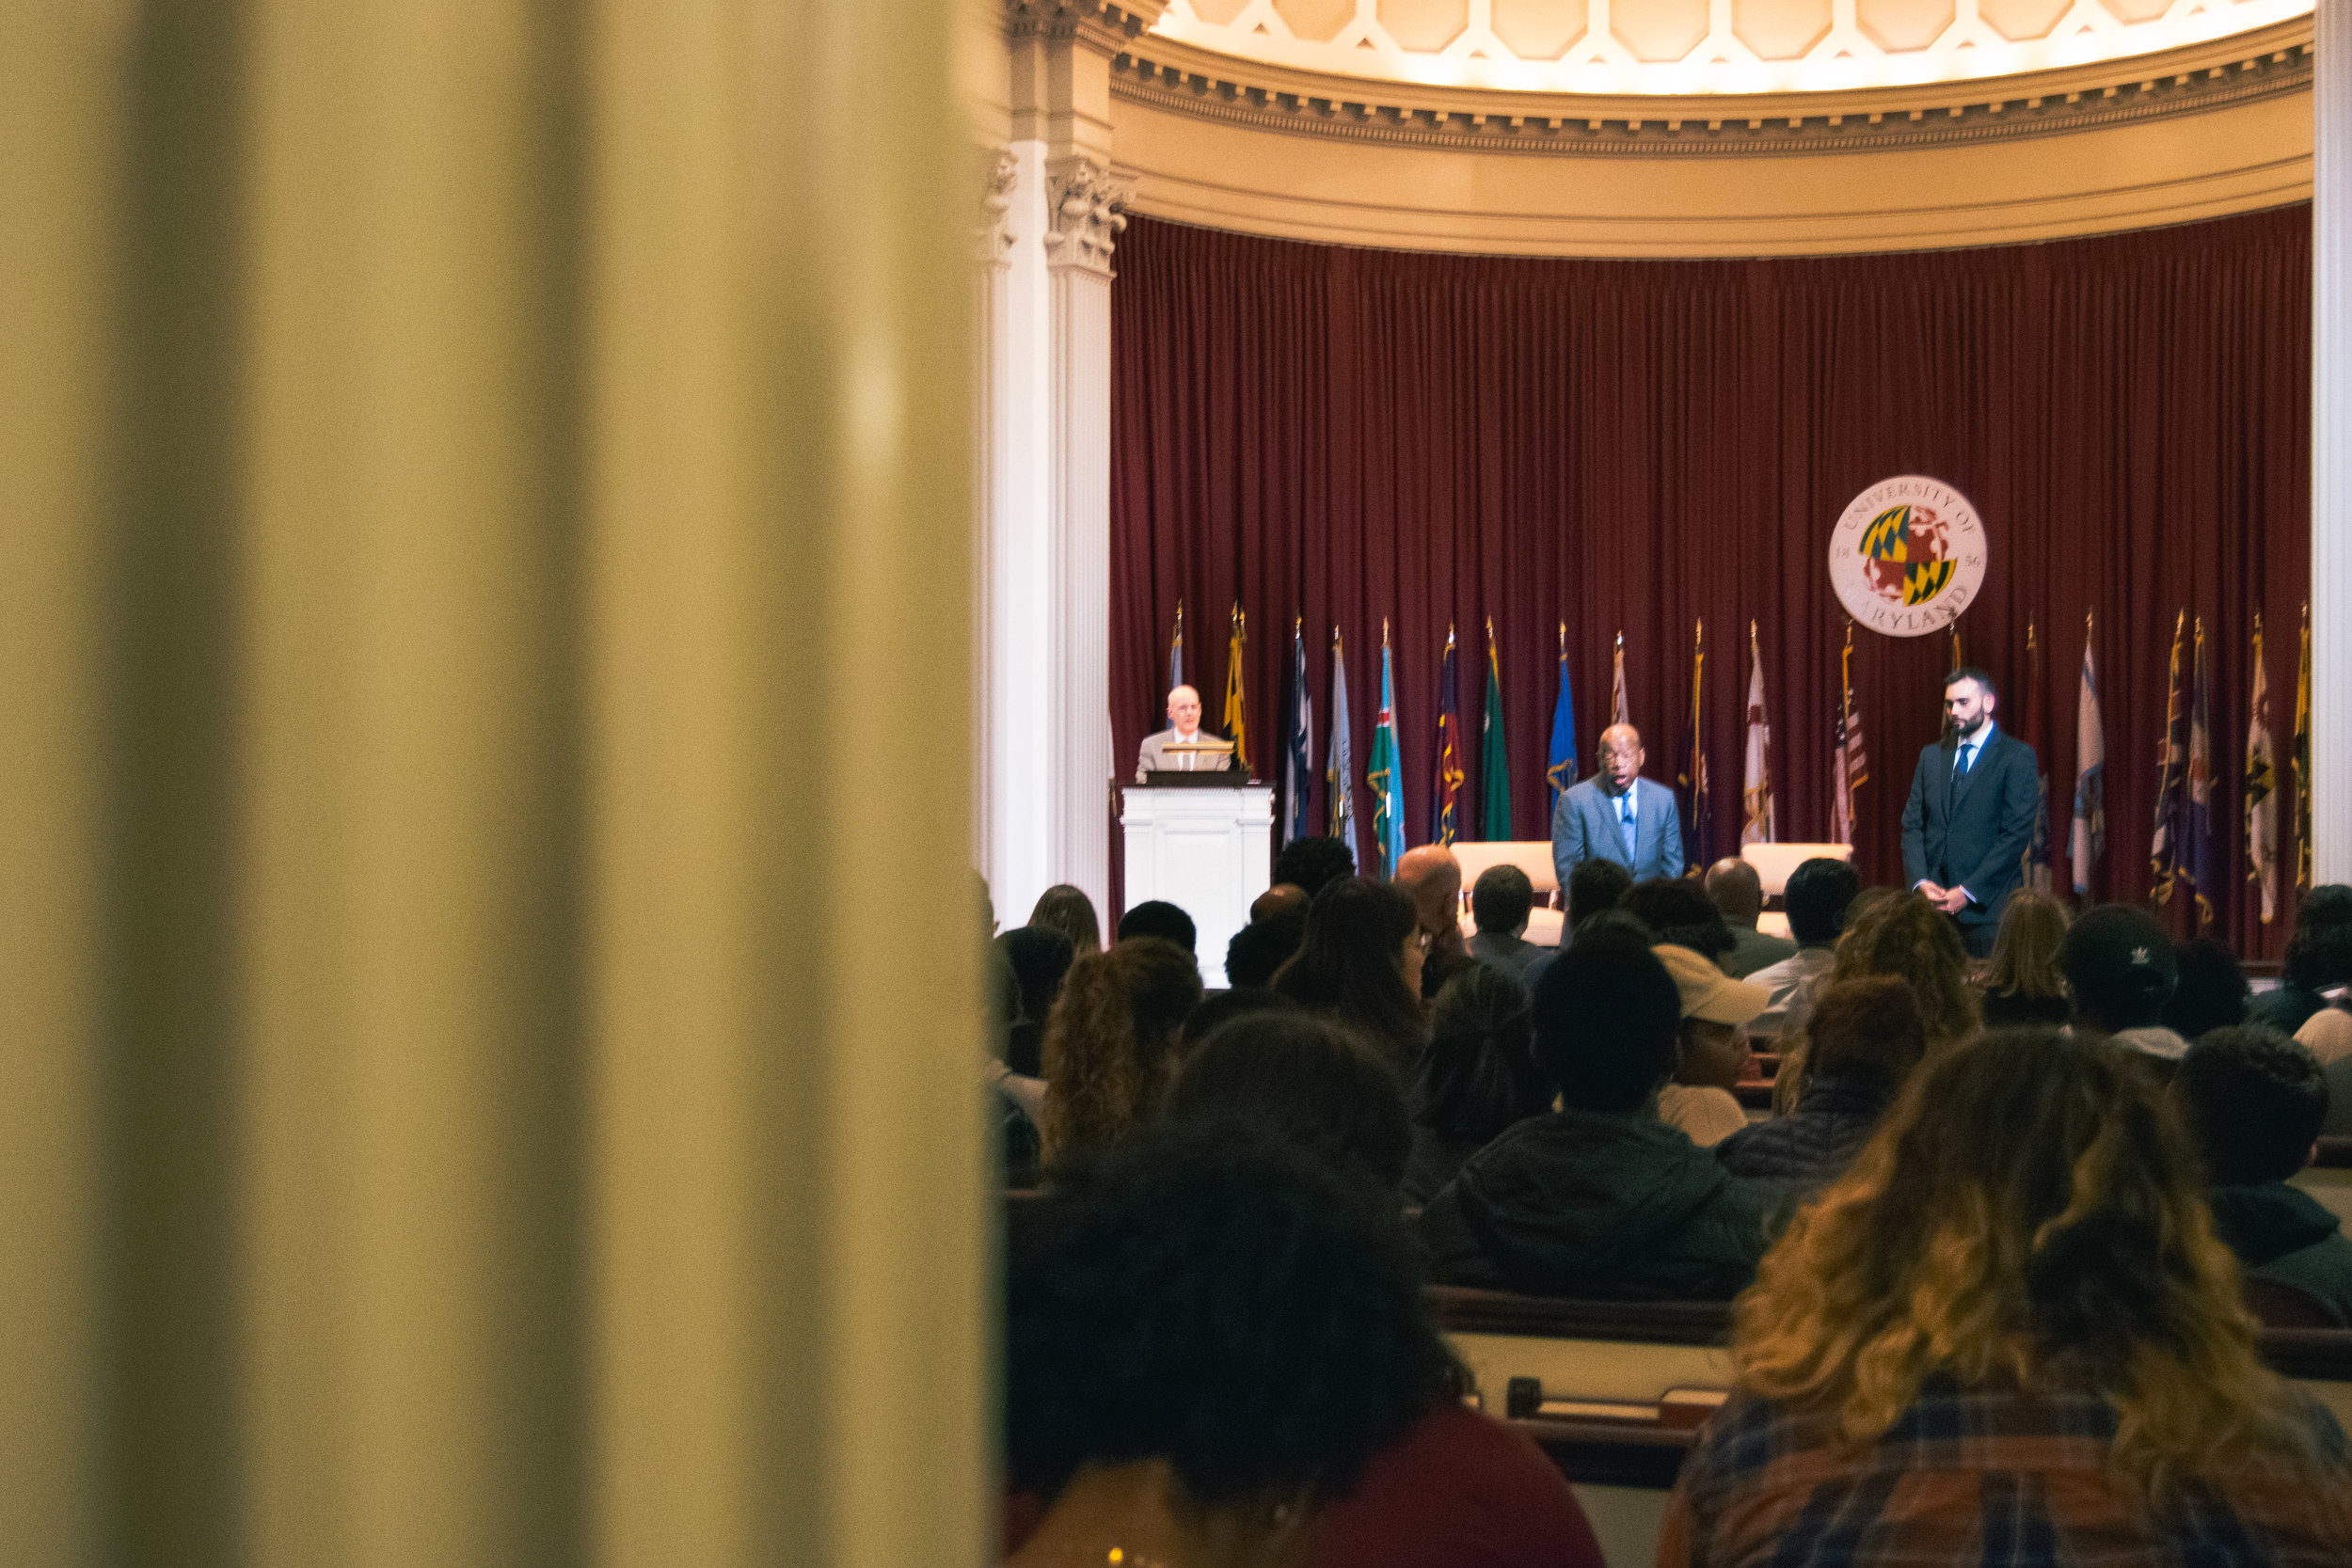 Students from all walks of life filled the pews of Memorial Chapel to hear a personal account of the Student Nonviolent Coordinating Committee's (SNCC) work on the voting rights campaign that spanned from Selma to Montgomery, Alabama.